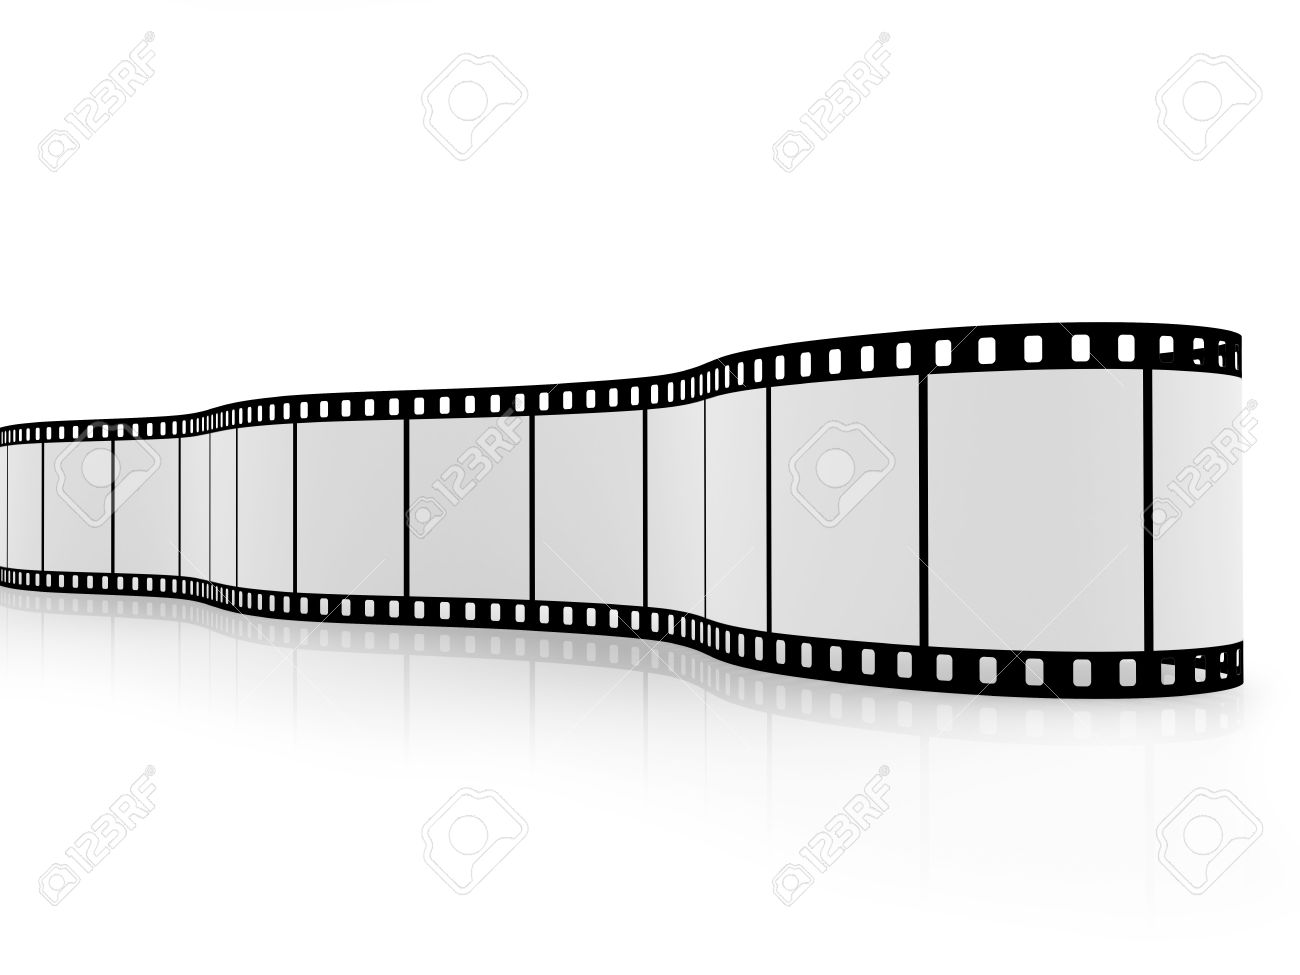 Blank film strip isolated on white with reflections on the floor. Stock Photo - 6137055